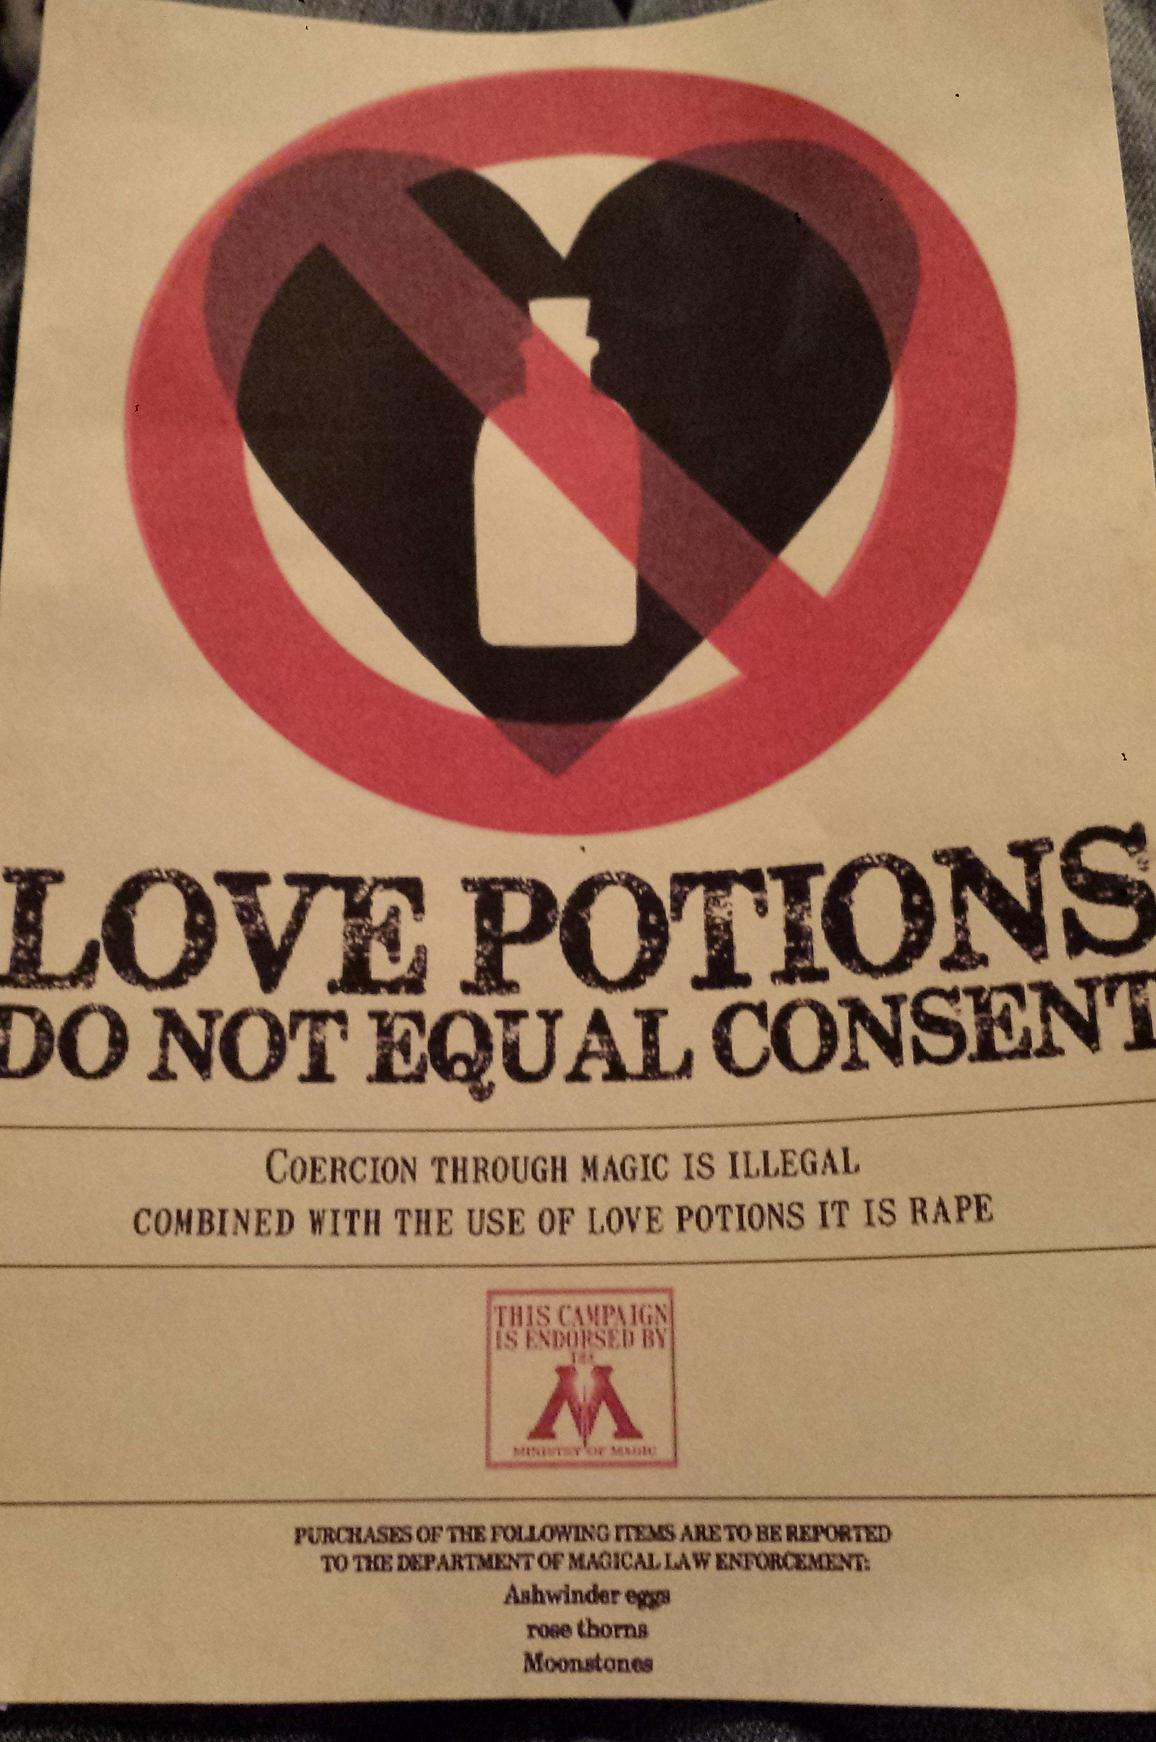 wizard_love_potions_do_not_equal_consent